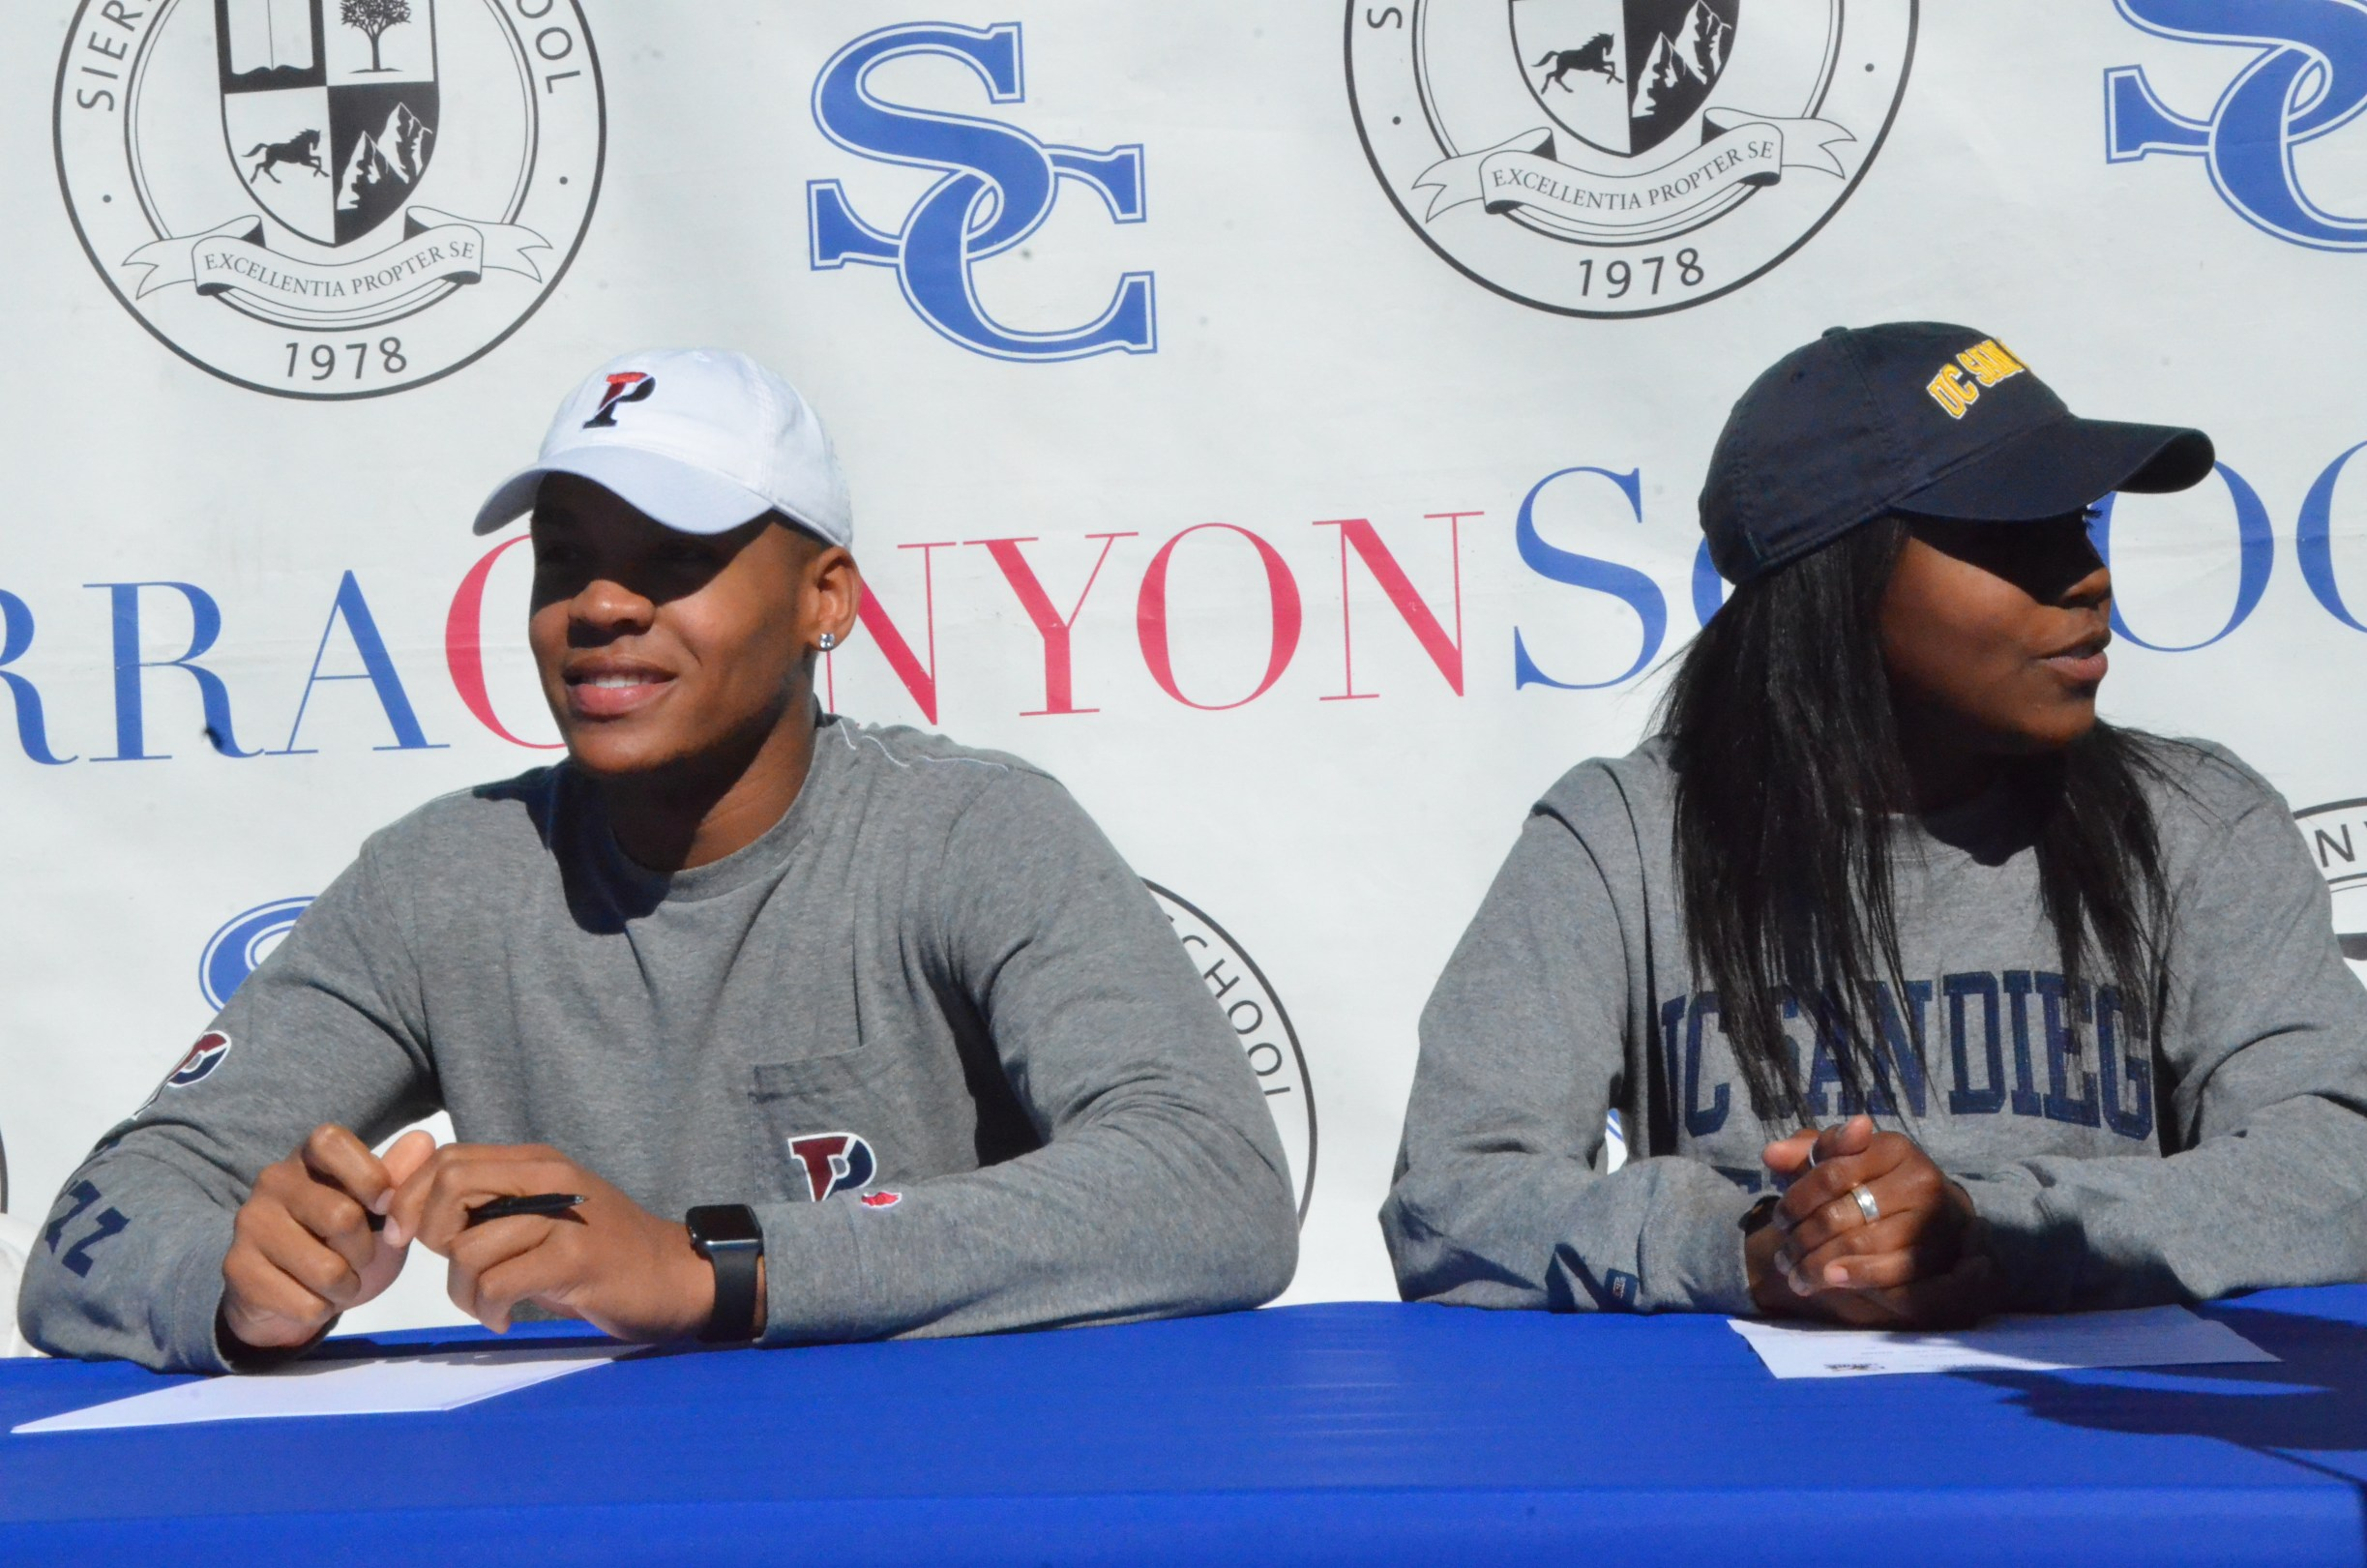 Hollinquest (Left) & Hobson (Right) during Signing Day